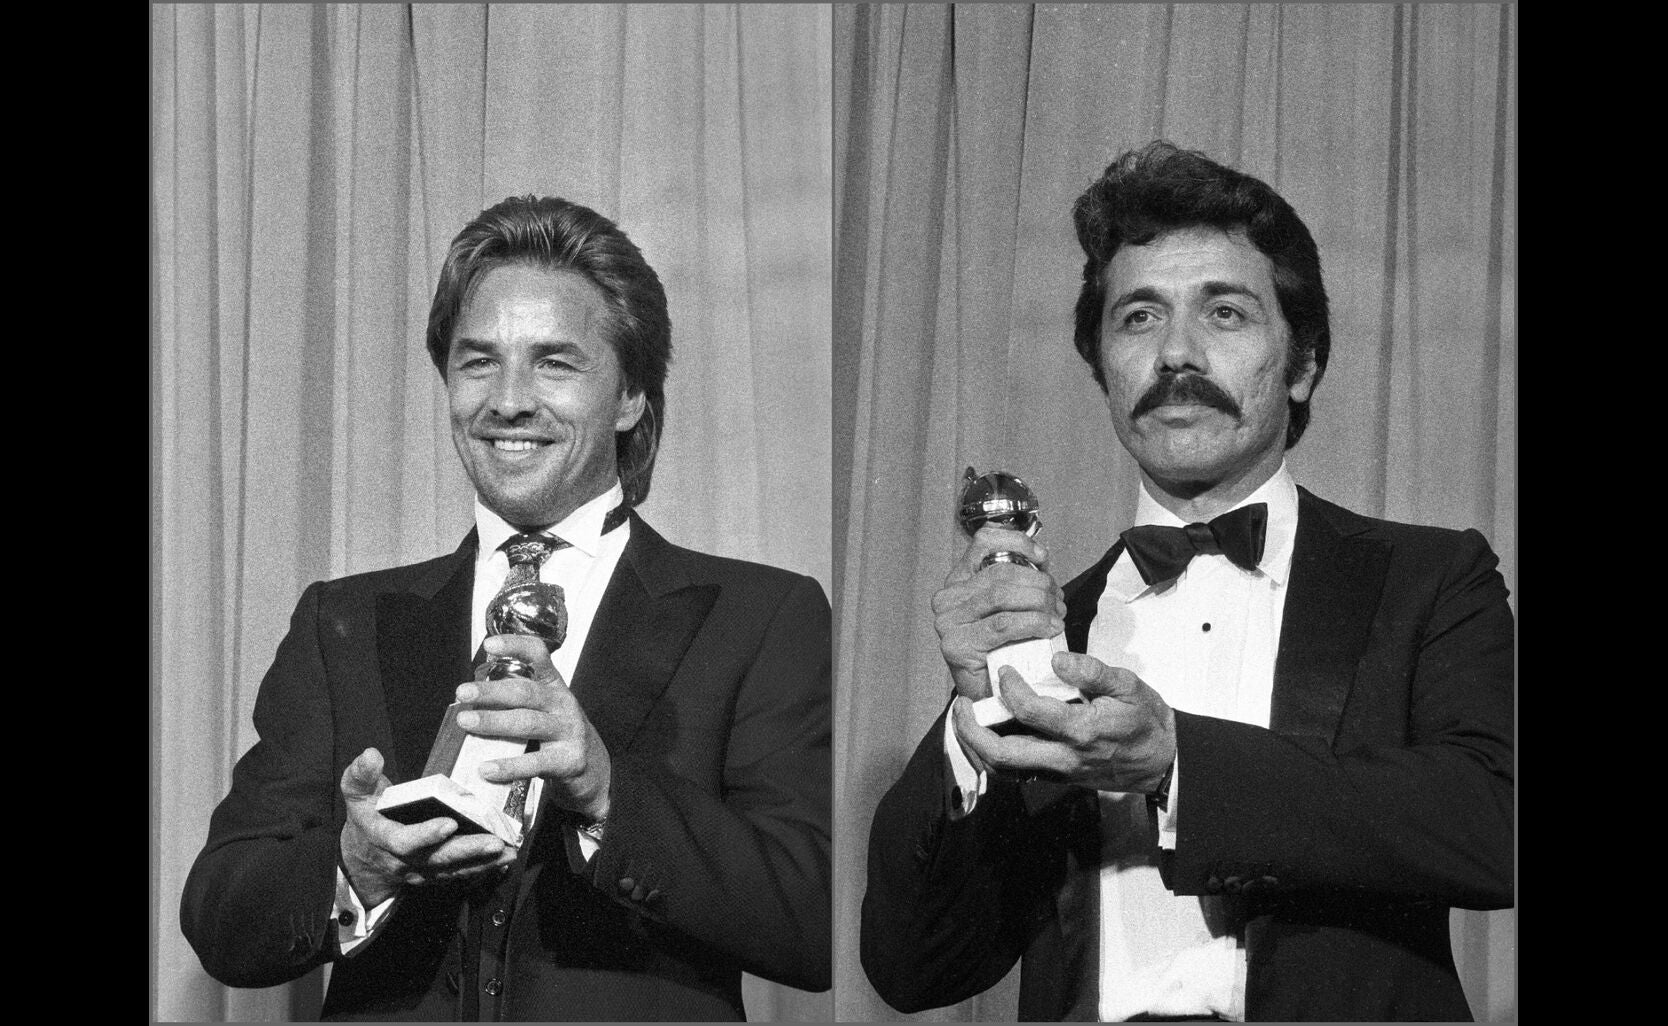 Miami Vice stars Don Johnson and Edward James Olmos